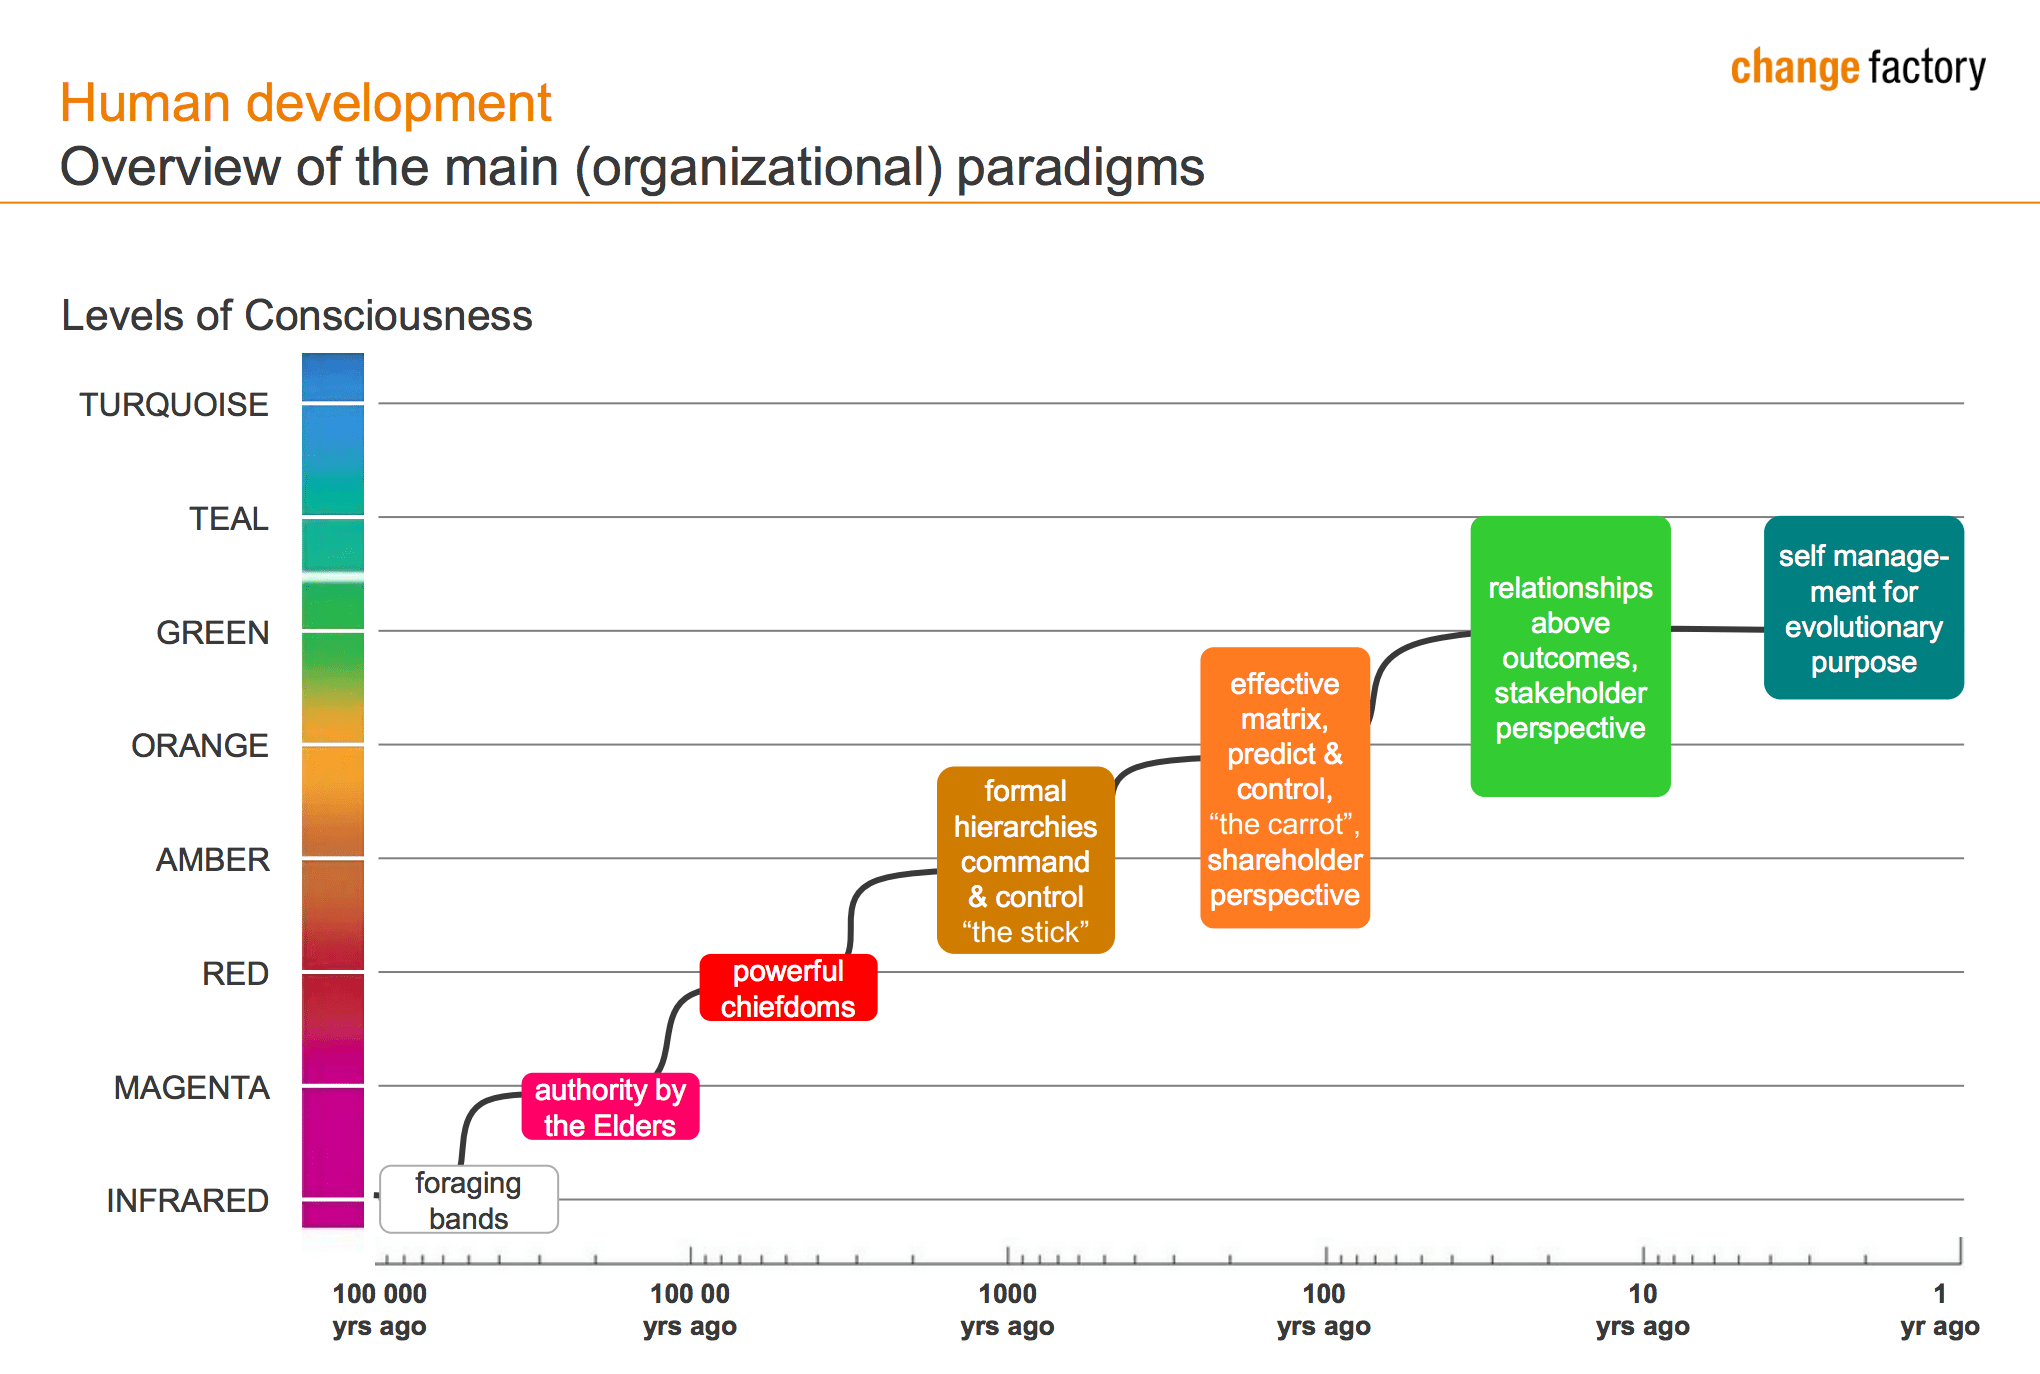 Human Development Reinventing Organizations Chart. Image source: Change Factory